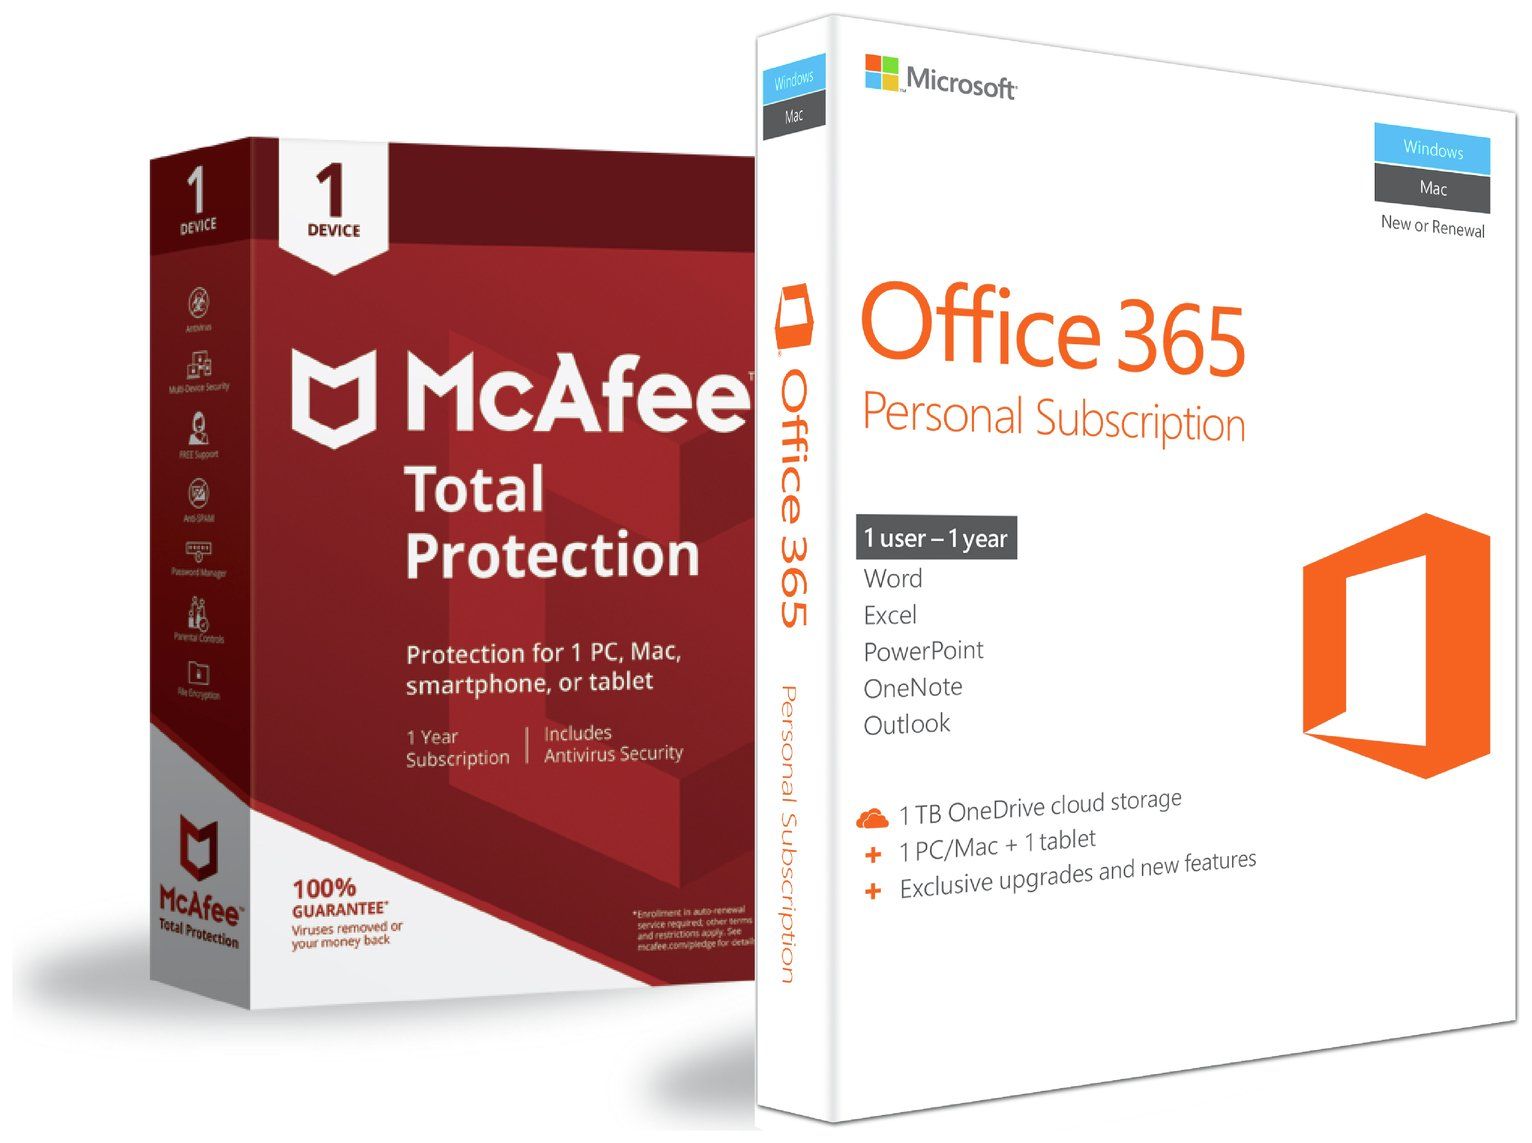 Microsoft Office 365 Personal, Mcafee TP 1 Year 1 User